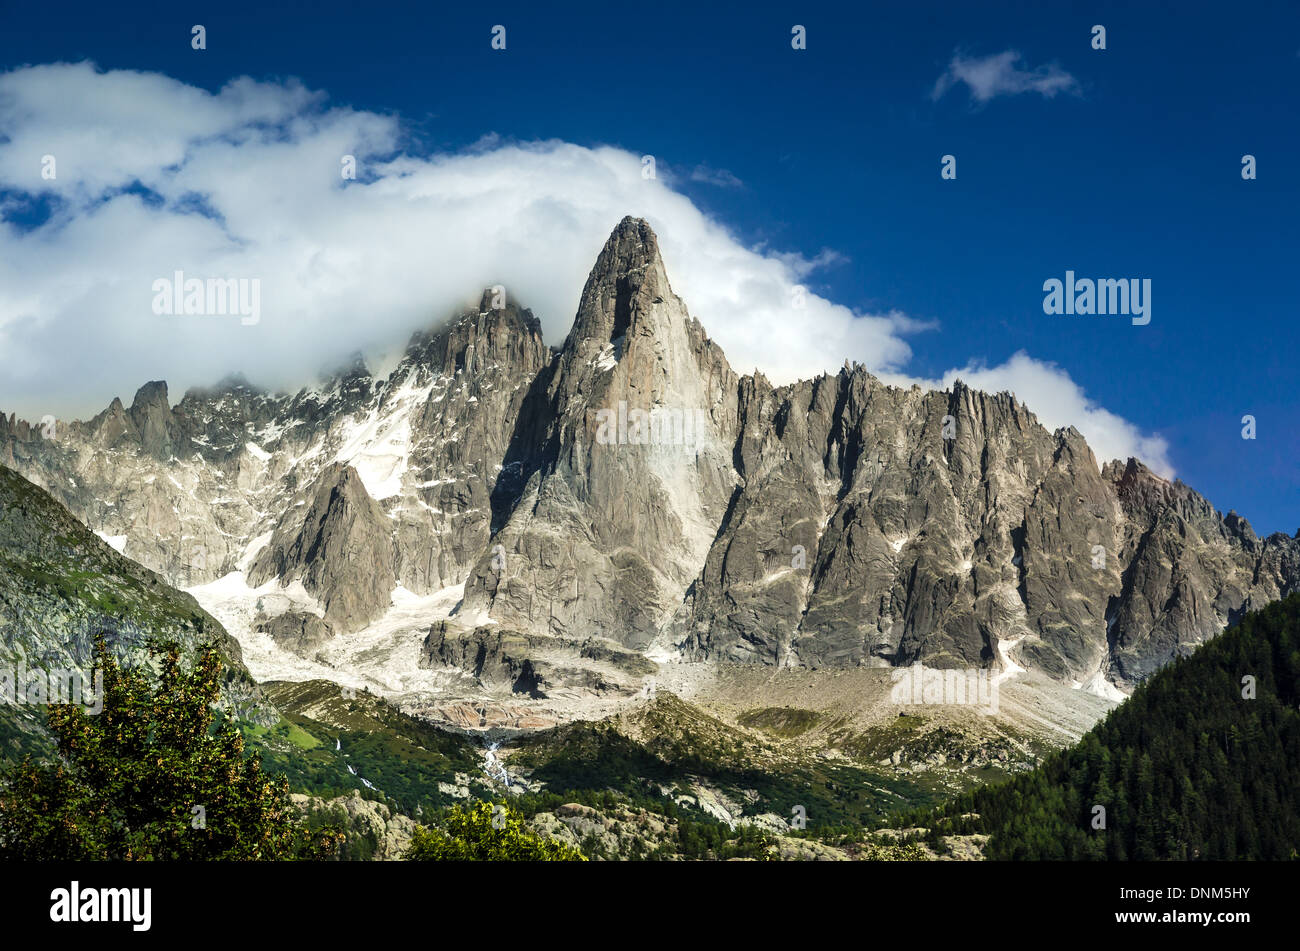 Alps Mountains, France. Outdoor scenery in Chamonis, with Aiguille de Midi ridge (3845 m) - Stock Image